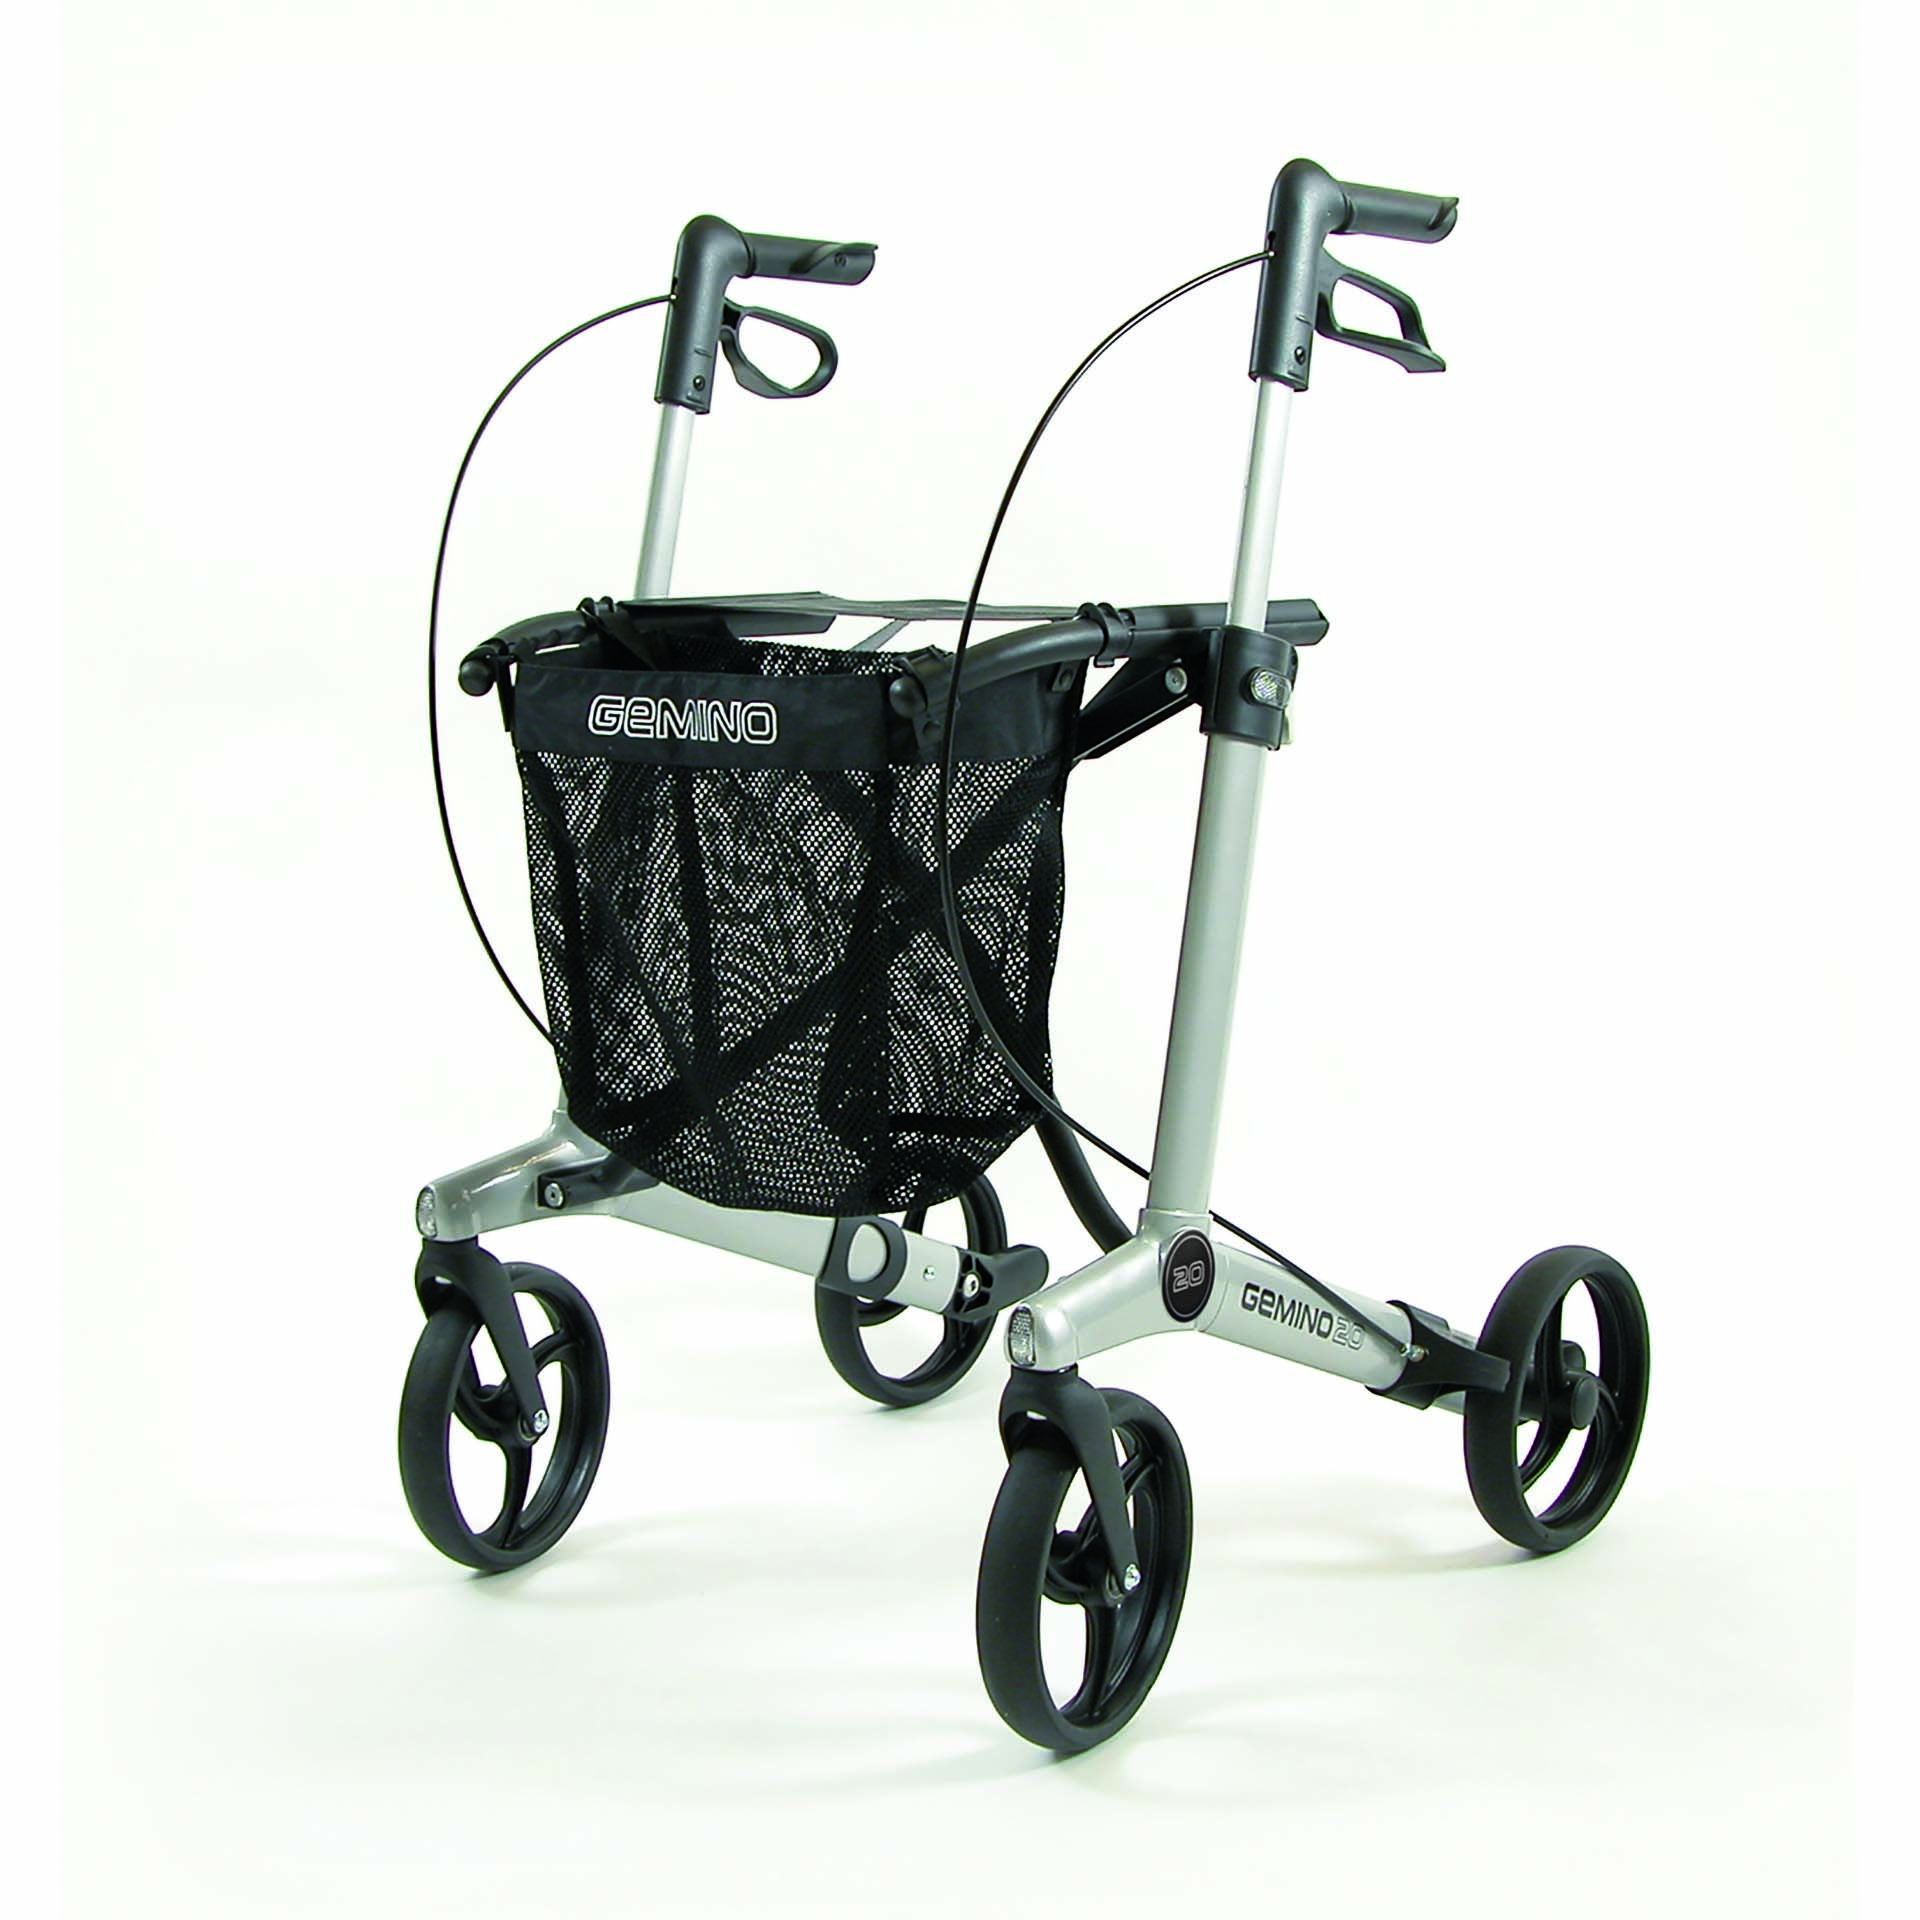 Gemino 20 rollator van Sunrise Medical